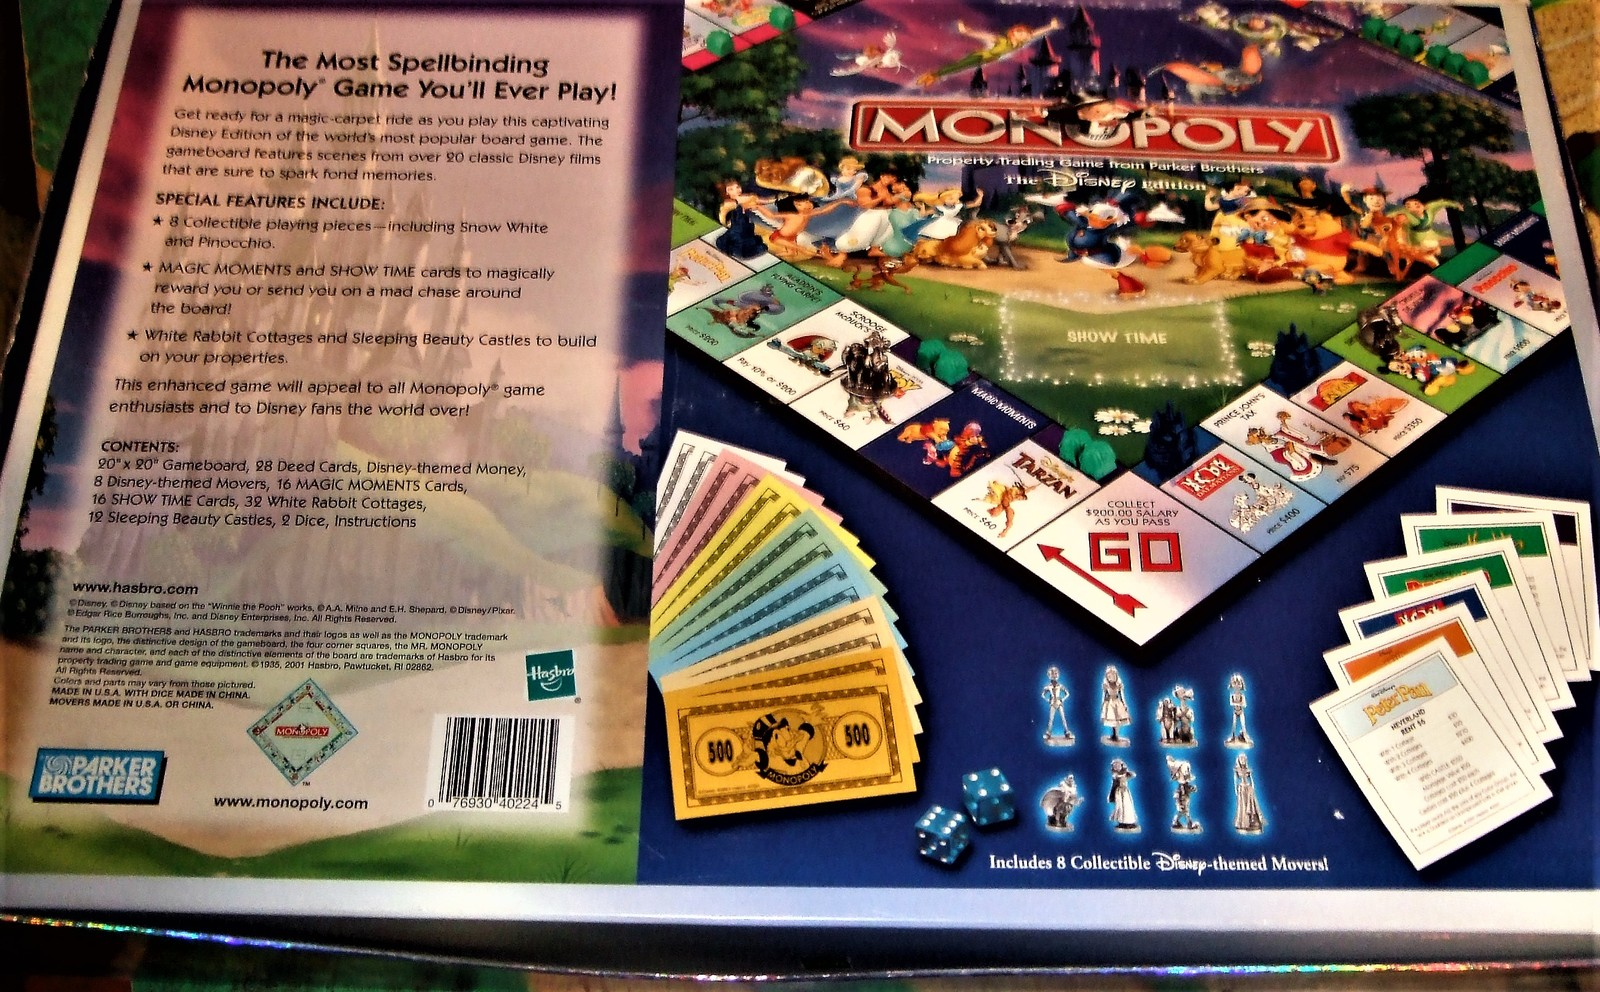 Monopoly - Property Trading Game From Parker Brothers - The Disney Edition  2001 image 11